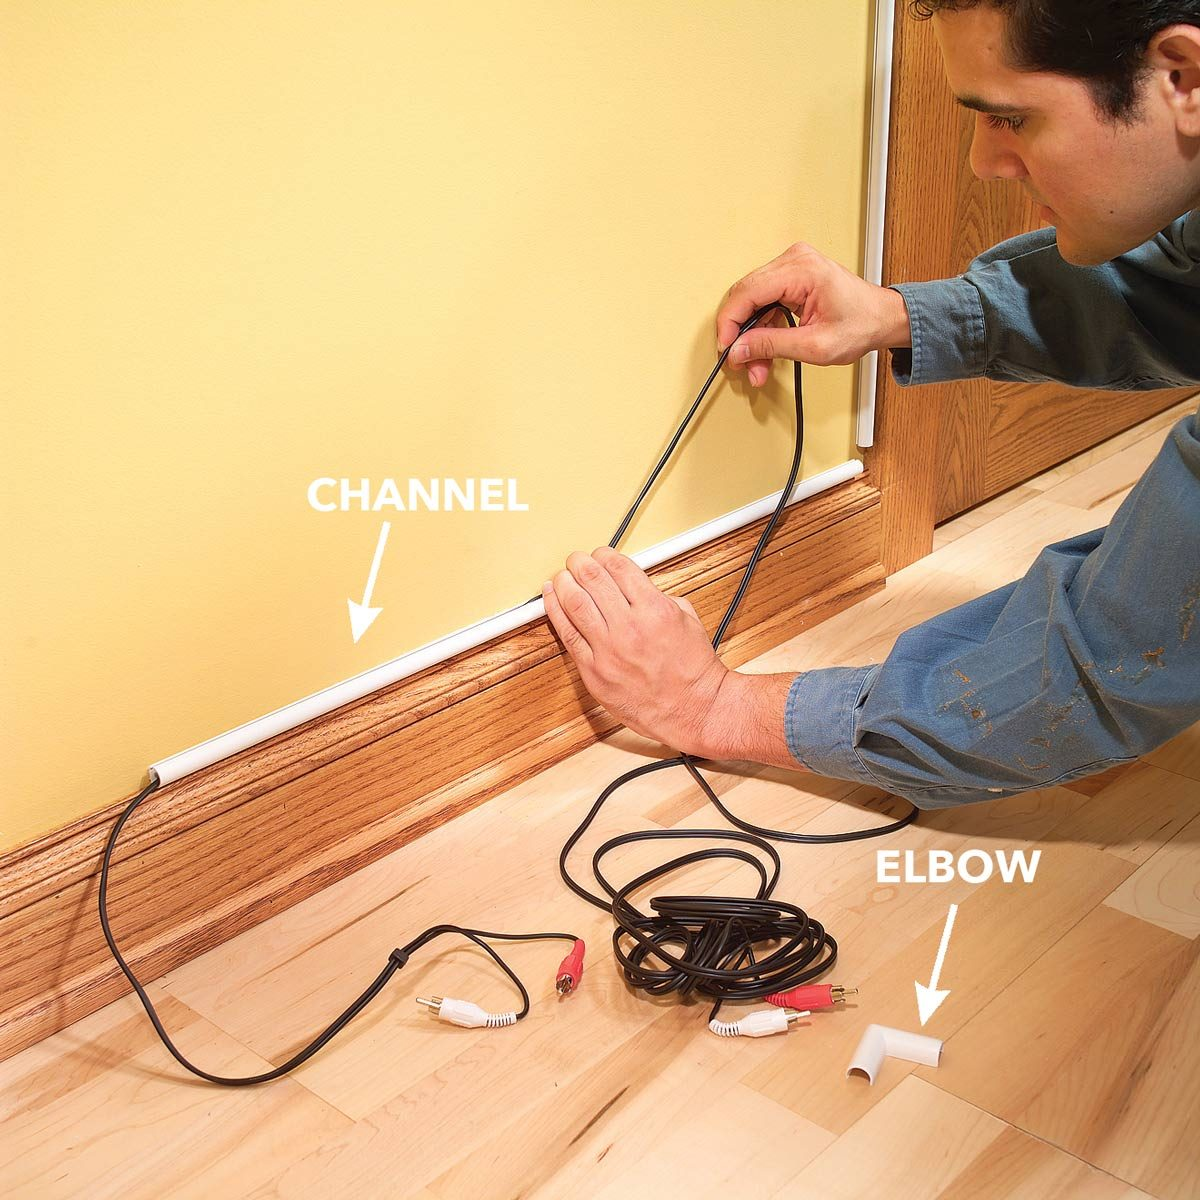 Hide Wires In A Room Without Going